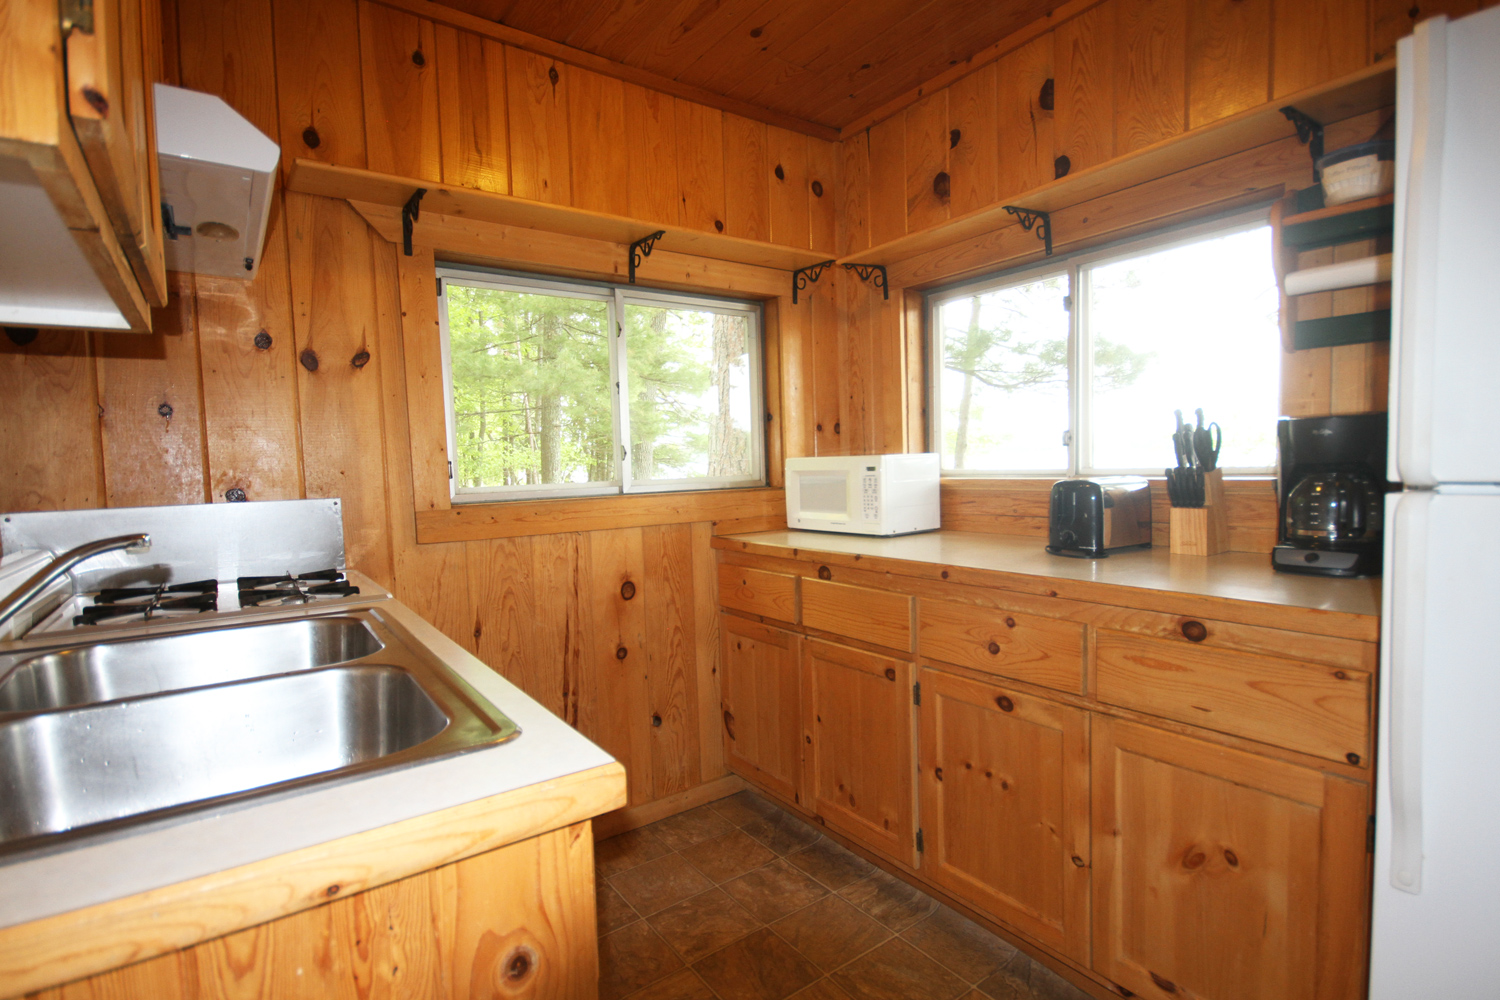 Galley Style Kitchen with View of the Lake